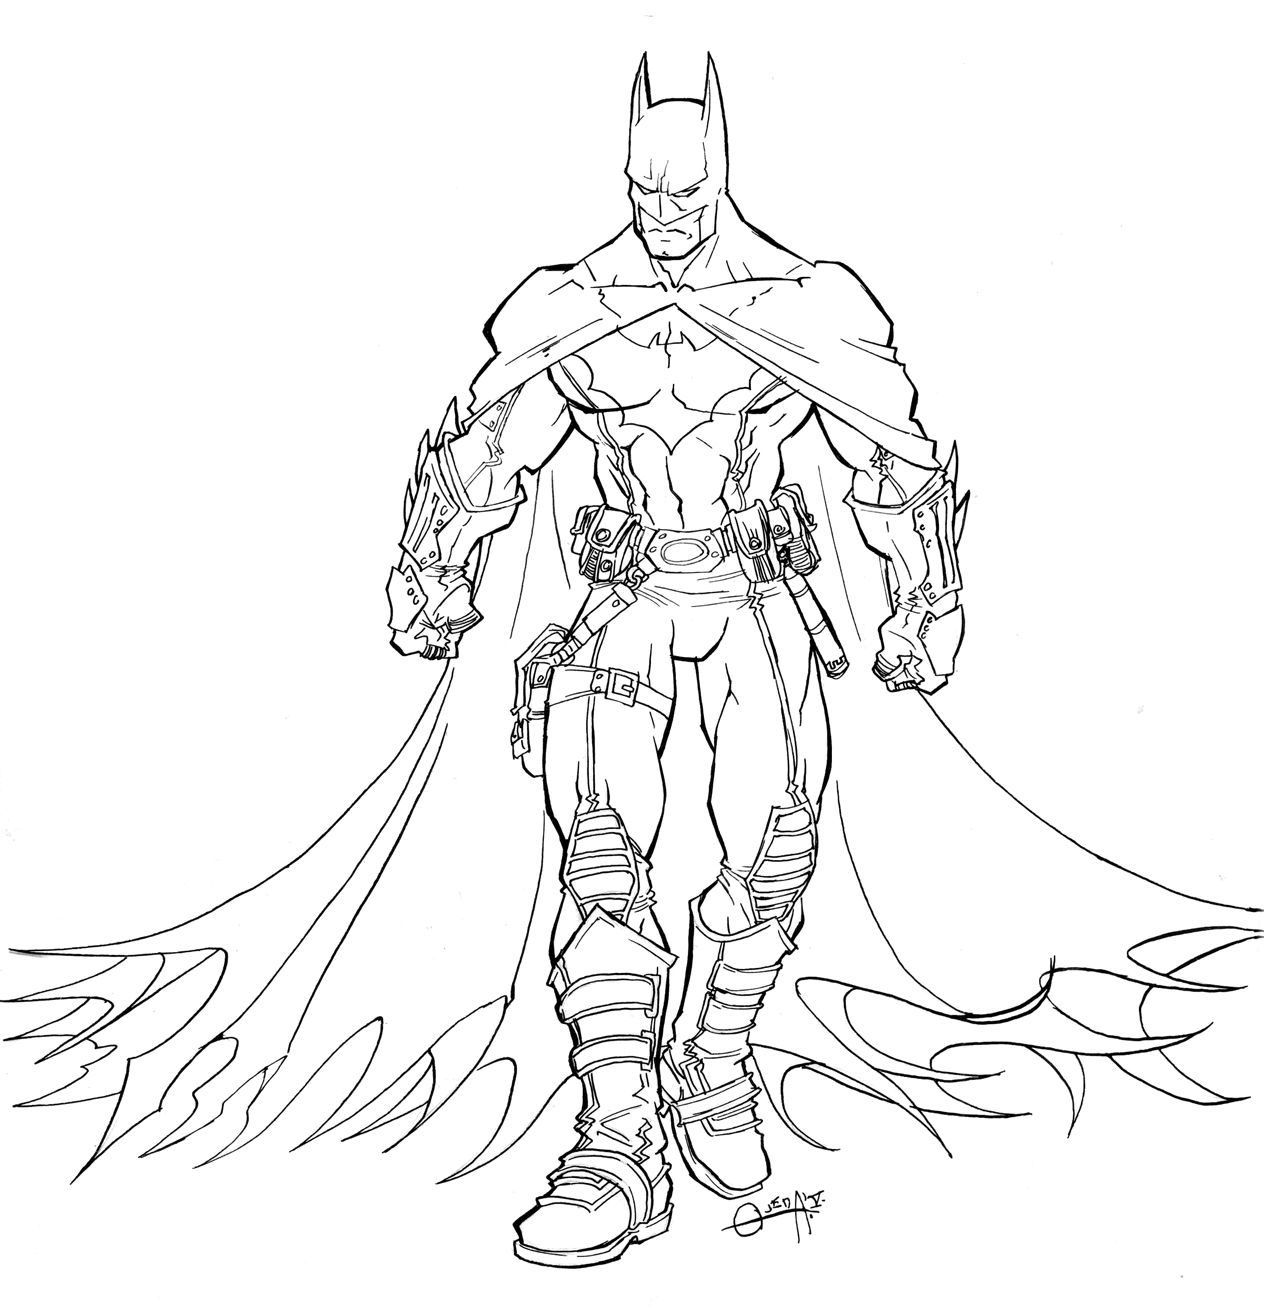 Free Printable Batman Coloring Pages For Kids Batman Coloring Pages Superhero Coloring Pages Superhero Coloring